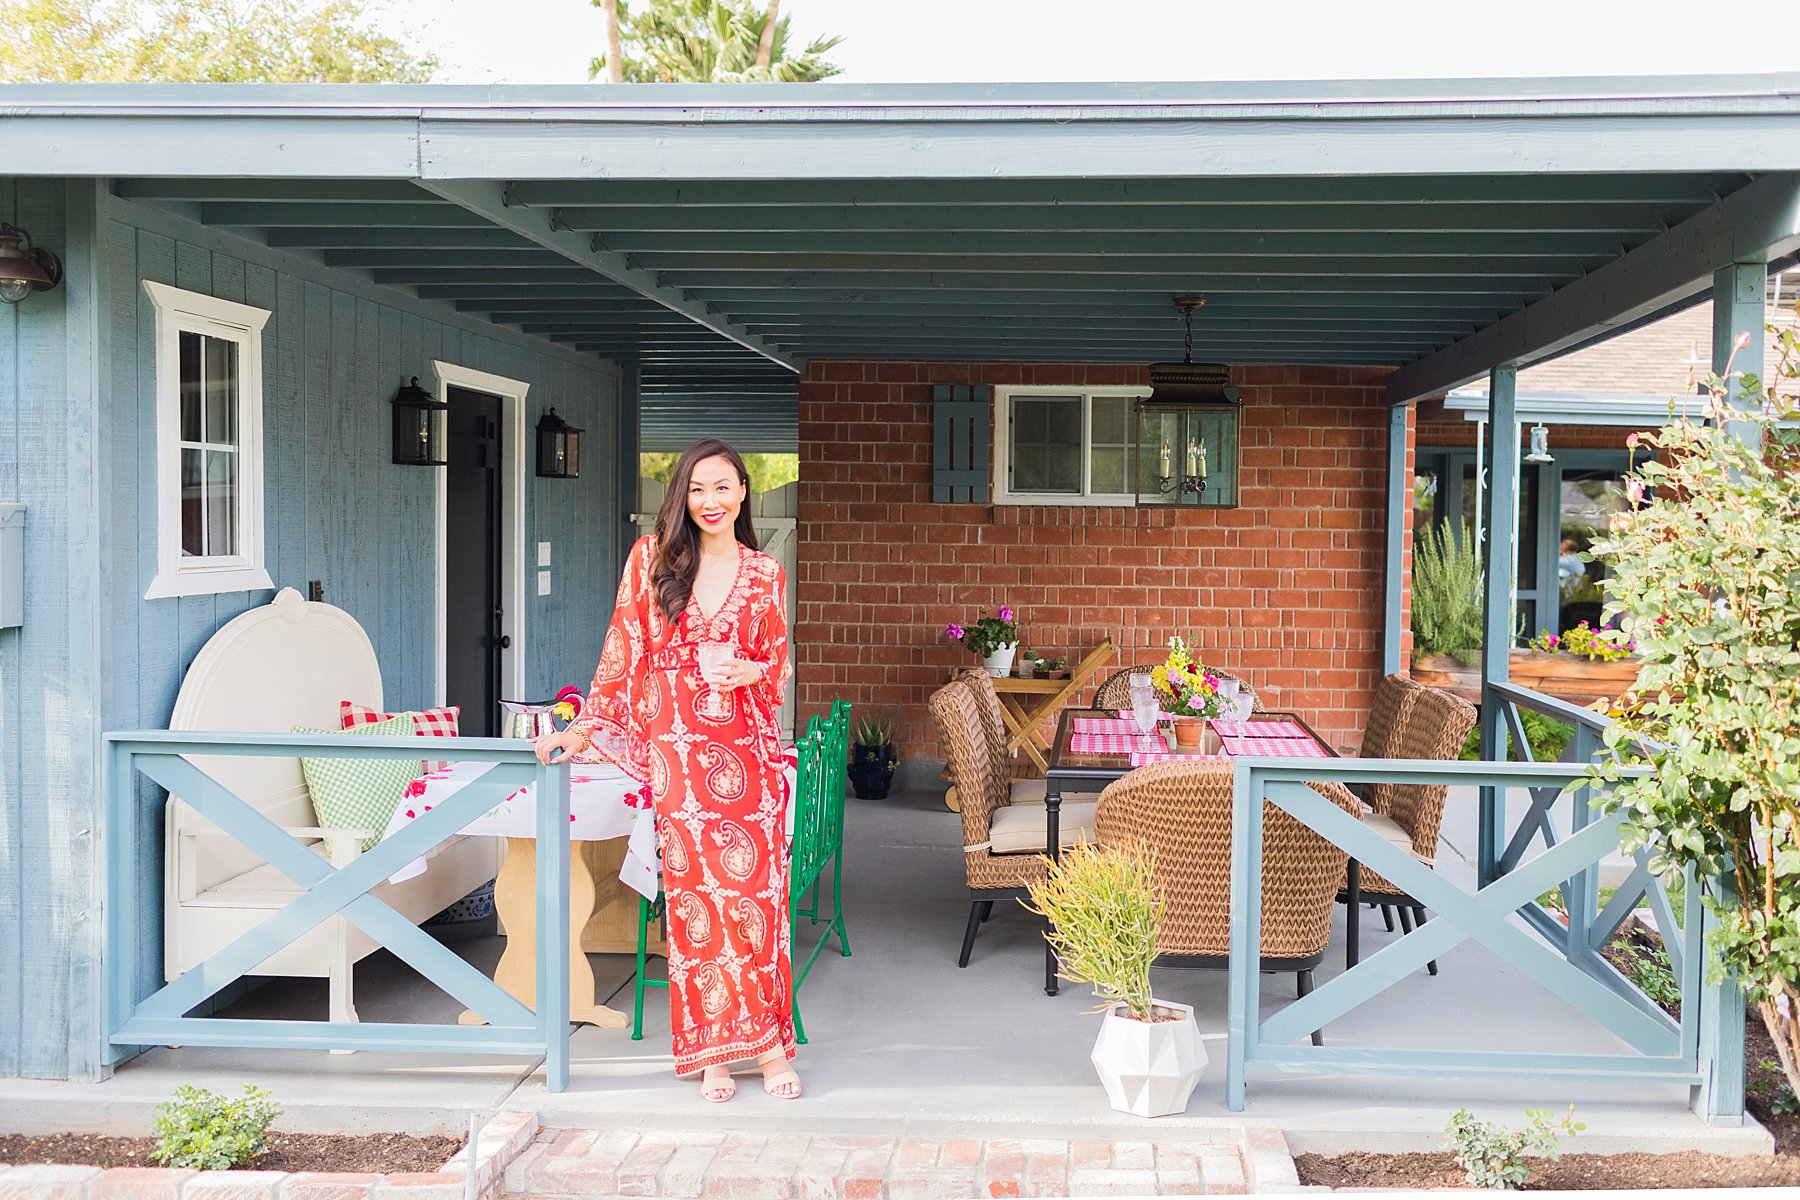 Patio home makeover lifestyle home blogger Diana Elizabeth